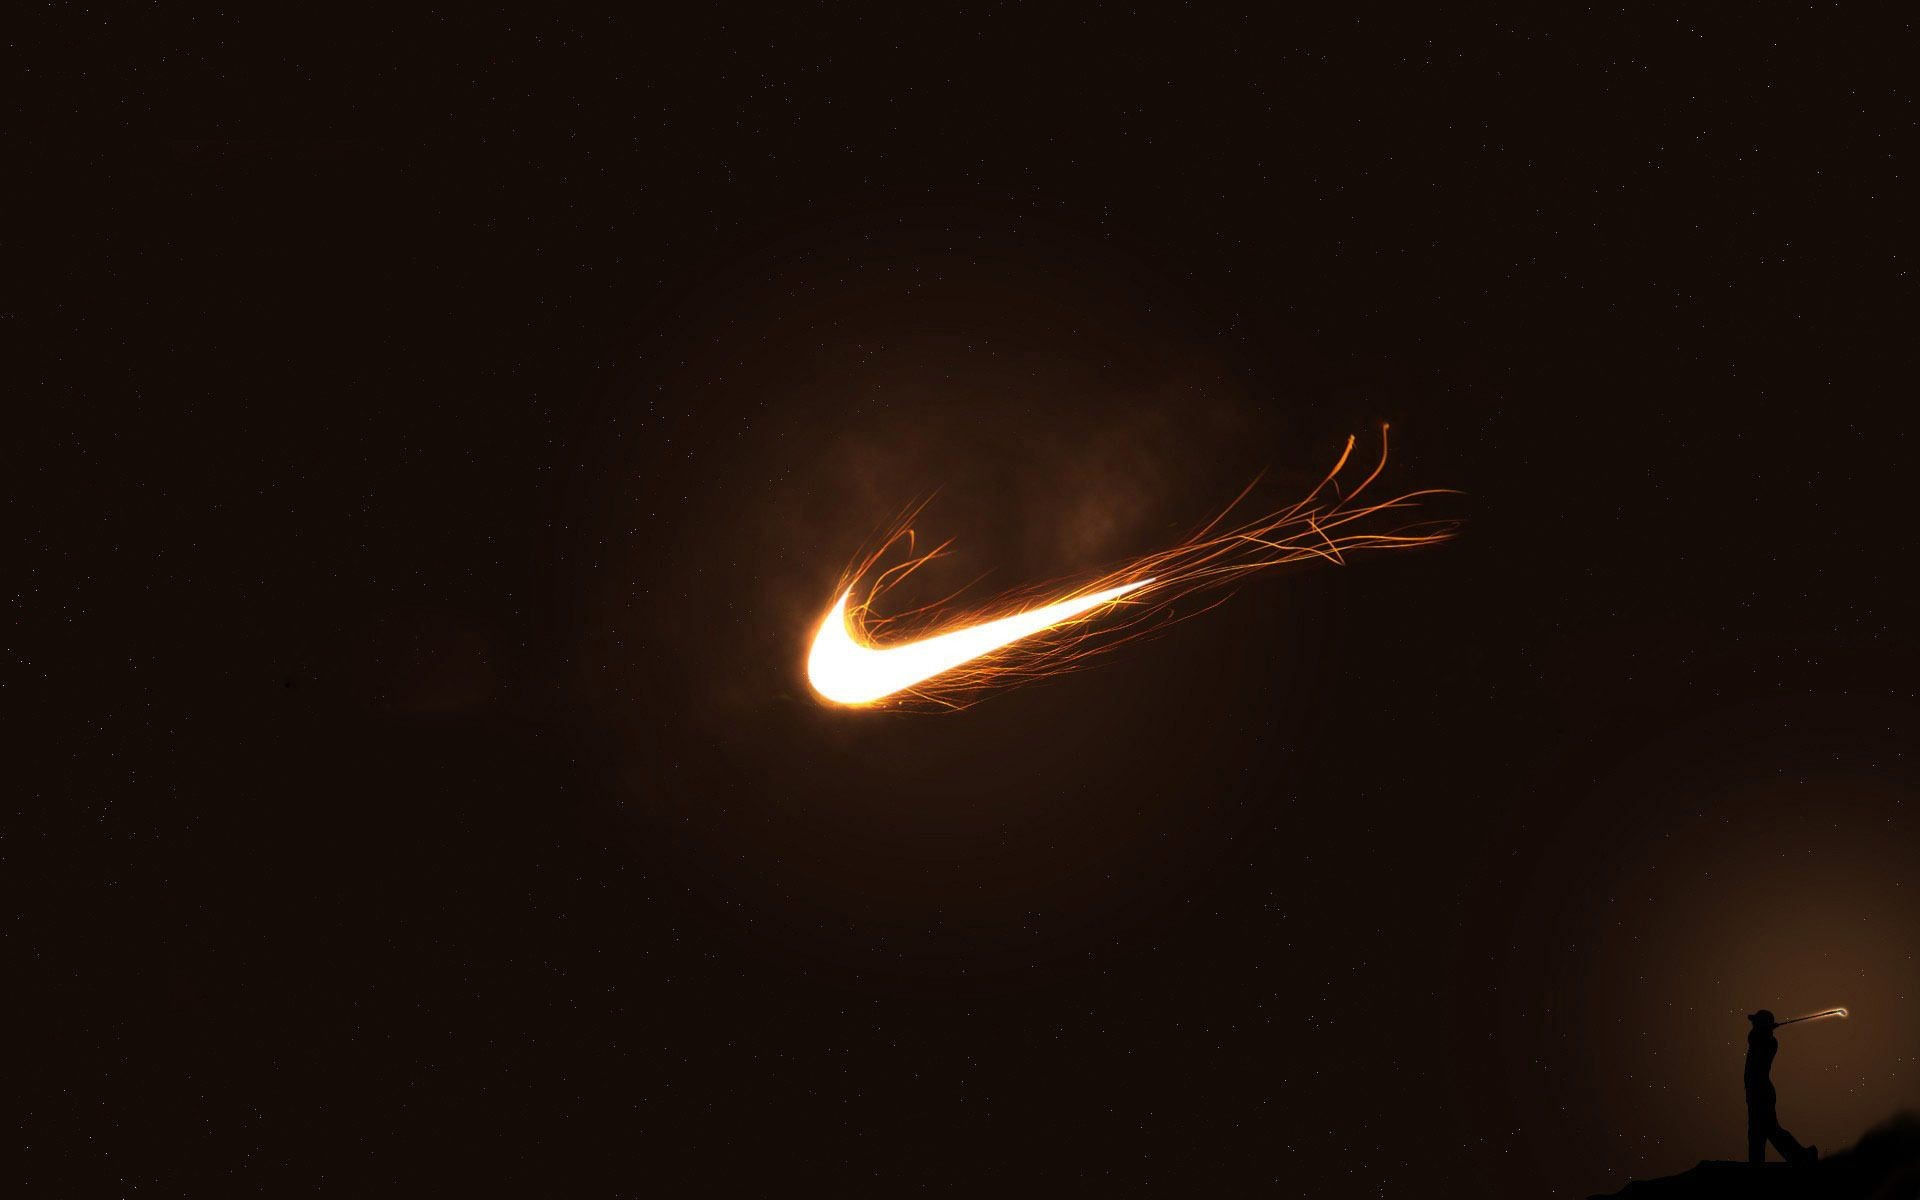 nike-fire-744 Nike wallpaper HD free wallpapers backgrounds images .